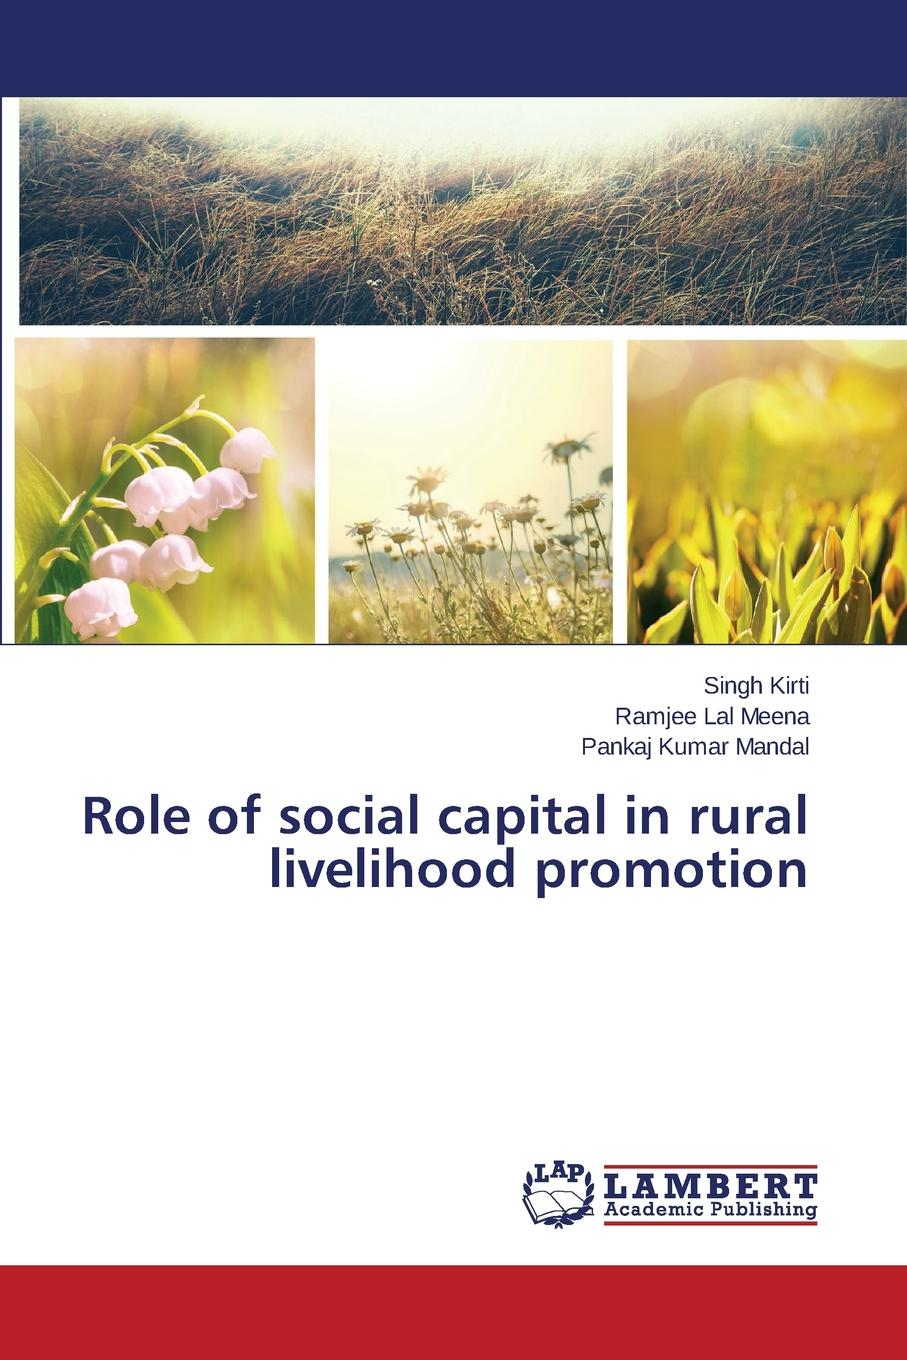 Kirti Singh, Meena Ramjee Lal, Mandal Pankaj Kumar Role of Social Capital in Rural Livelihood Promotion alok kumar and adam scott governance social and physical infrastructure and development